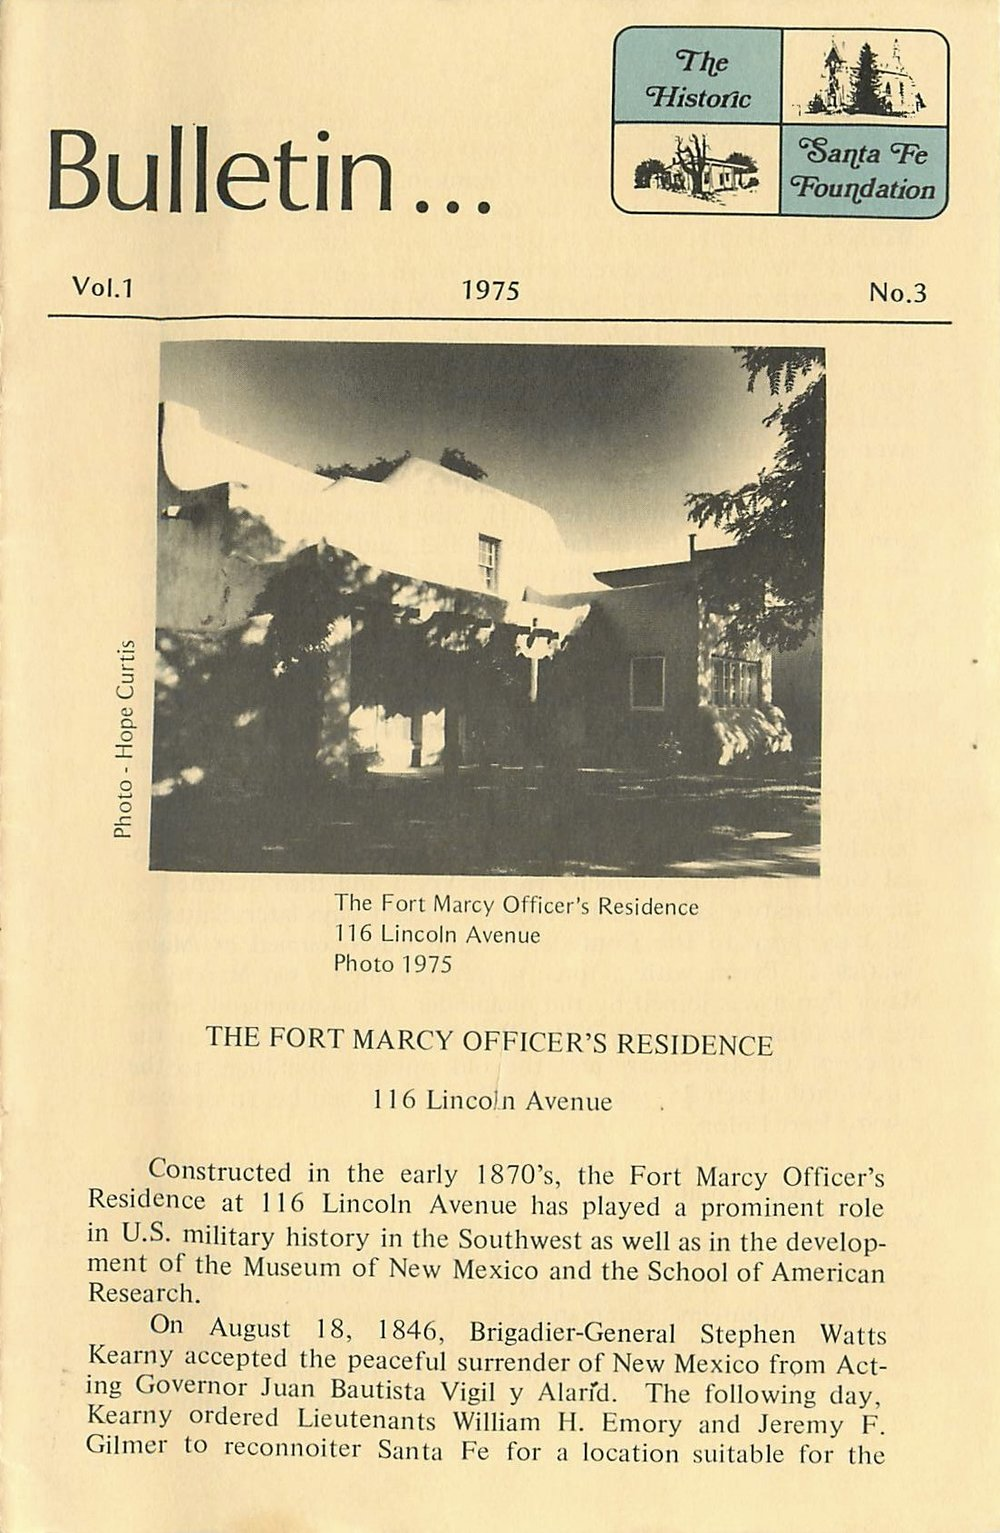 1975 HSFF Bulletin Vol.1 No.3Cover.jpg